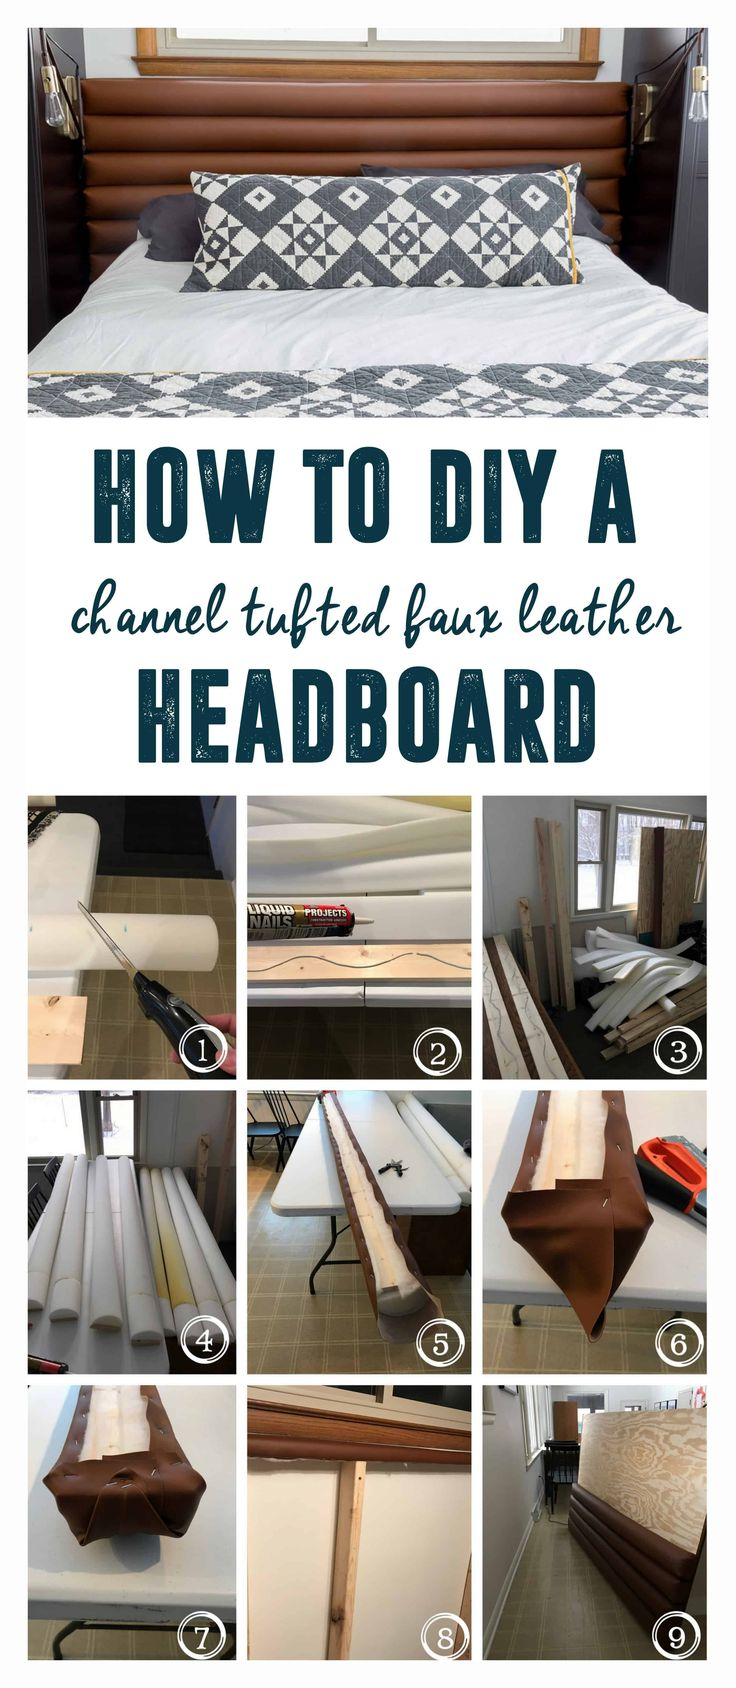 DIY Faux Leather Channel Tufted Headboard